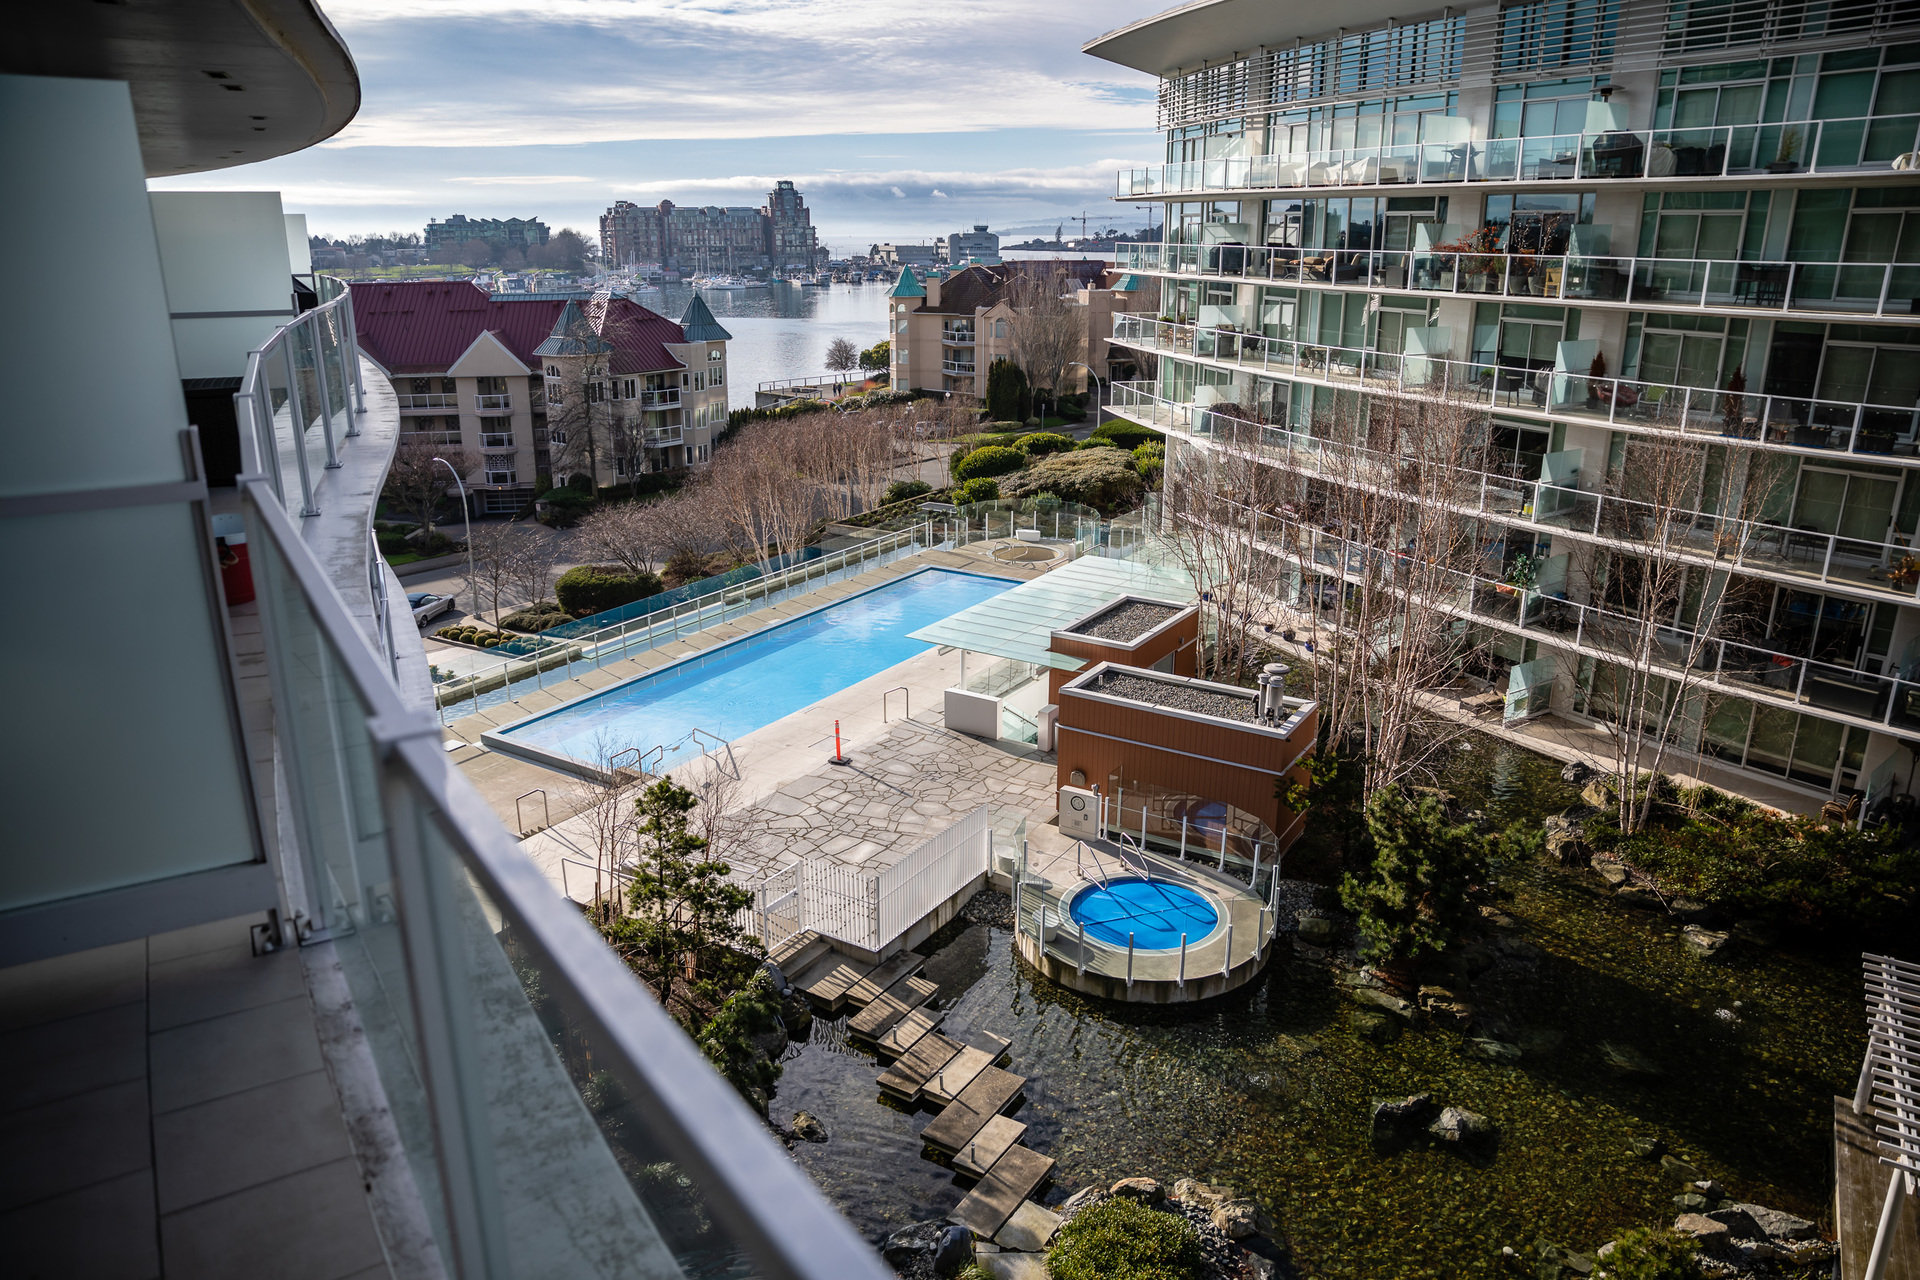 Condo Included Pool & Hot Tub Access at 503 - 66 Songhees Road, Songhees, Victoria West